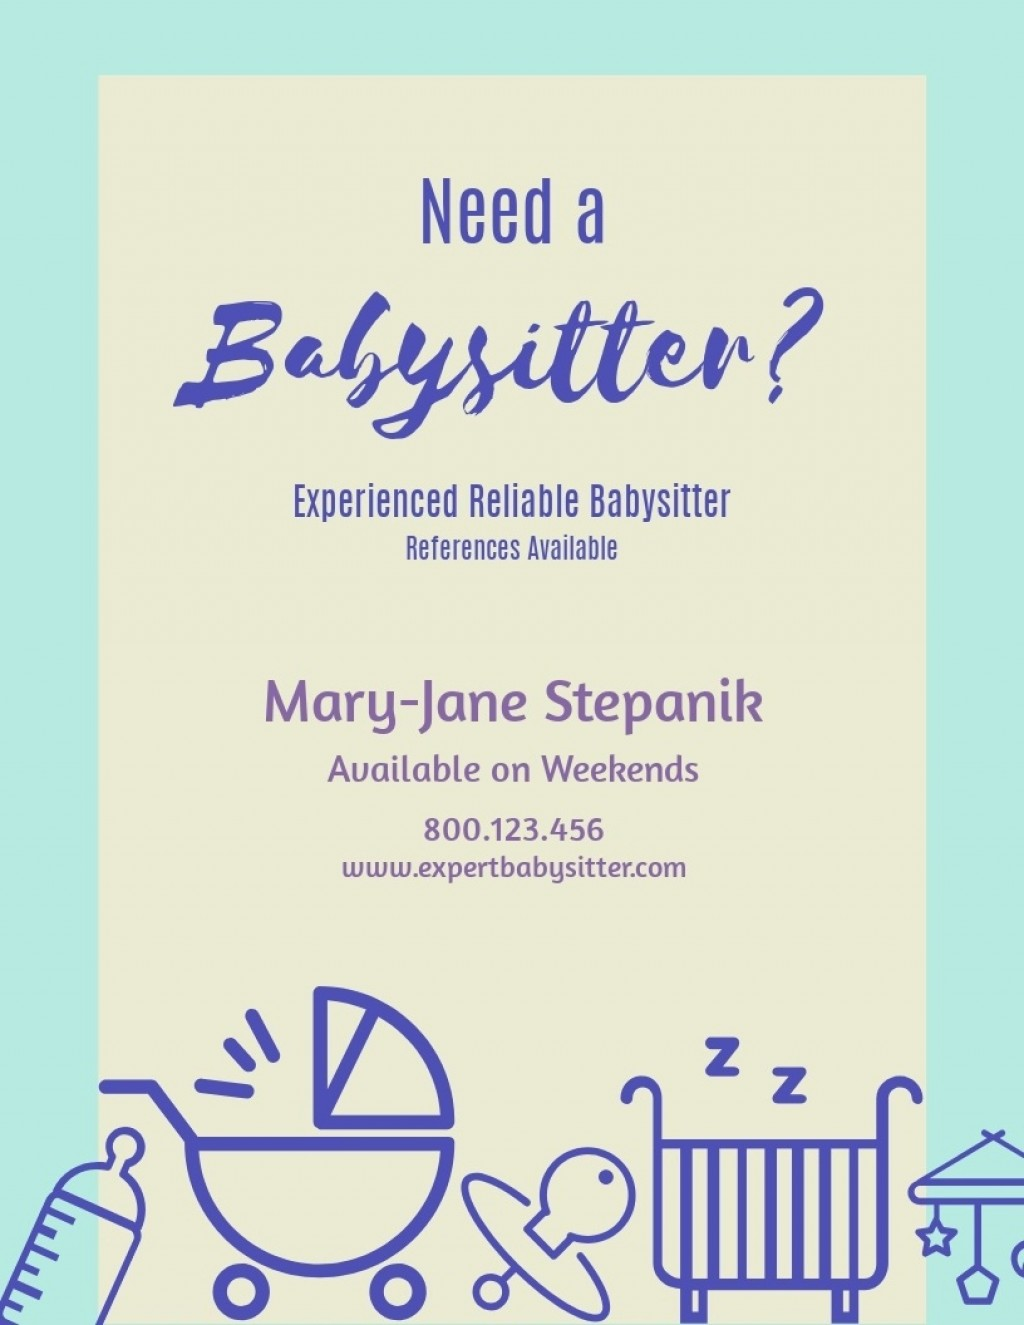 Need Free Babysitting Flyer Template  Printable Download Microsoft WordLarge